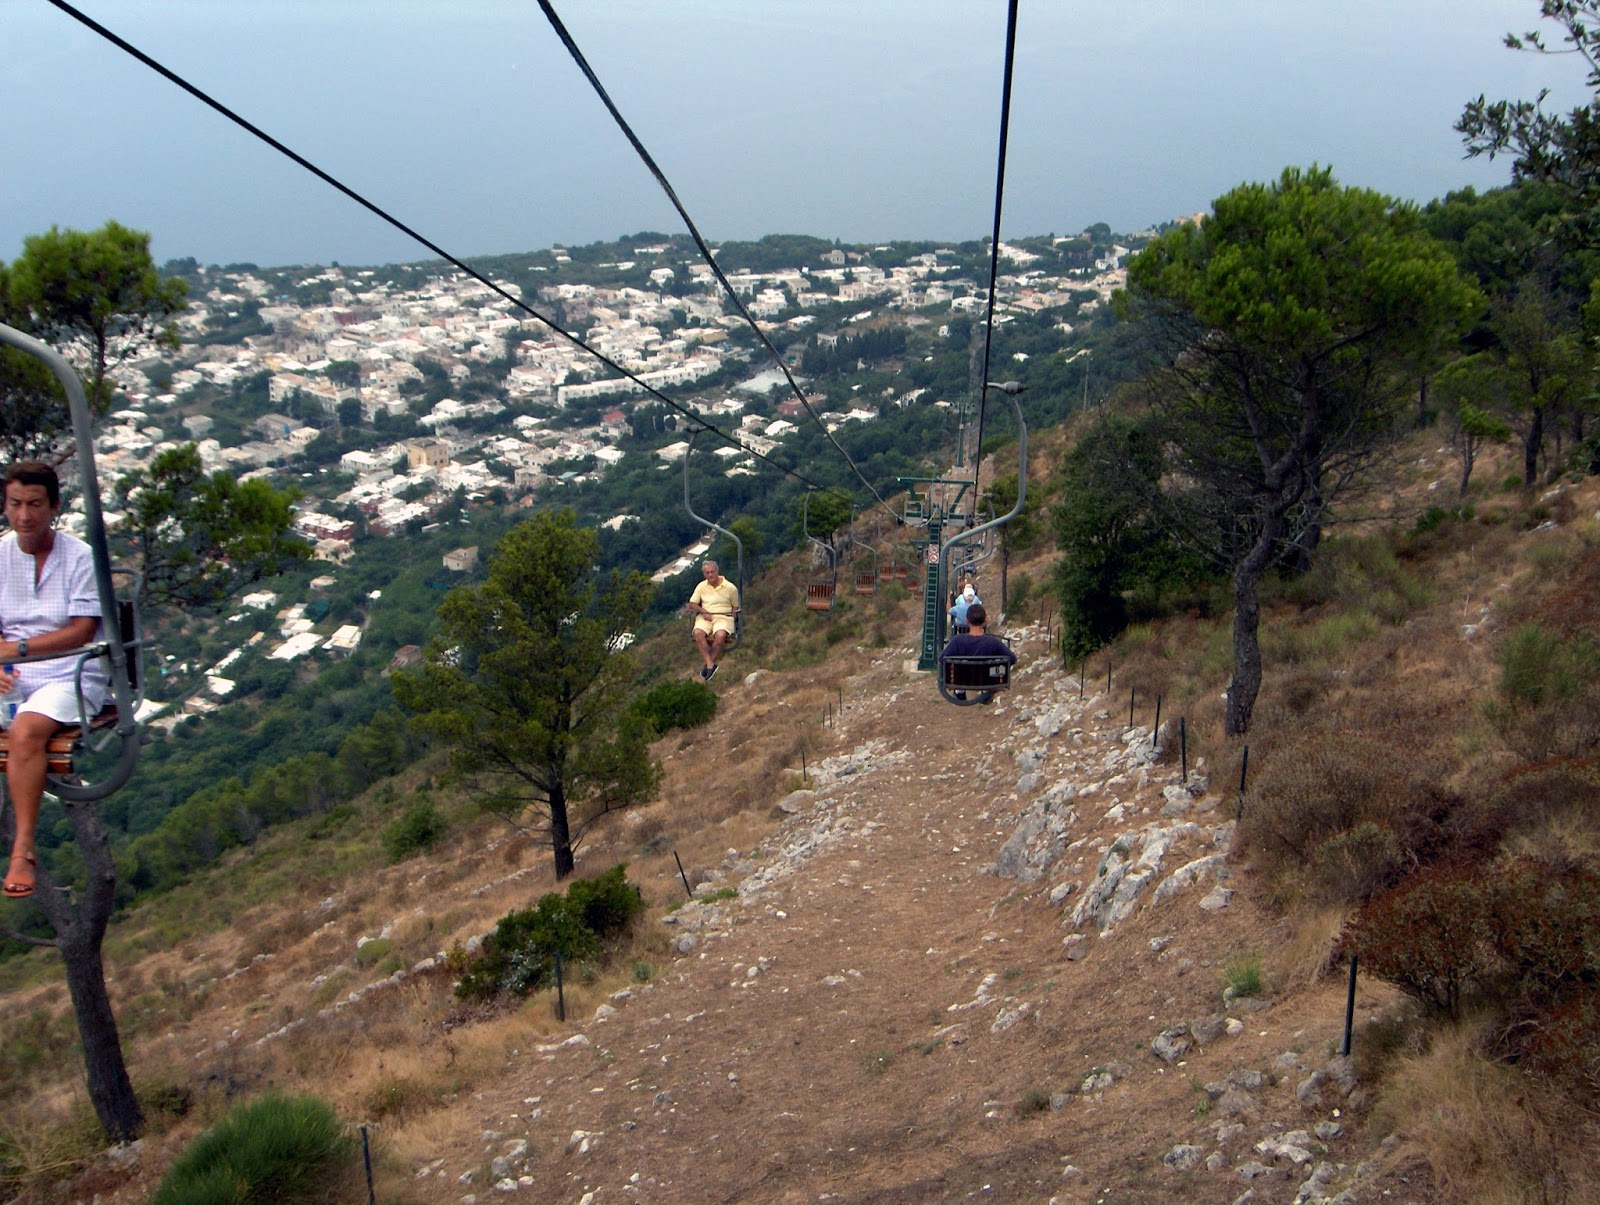 cable car, chair lift, Capri, italy, caprese, getting to capri from Sorrento, from Naples, travel, sea stacks, view,